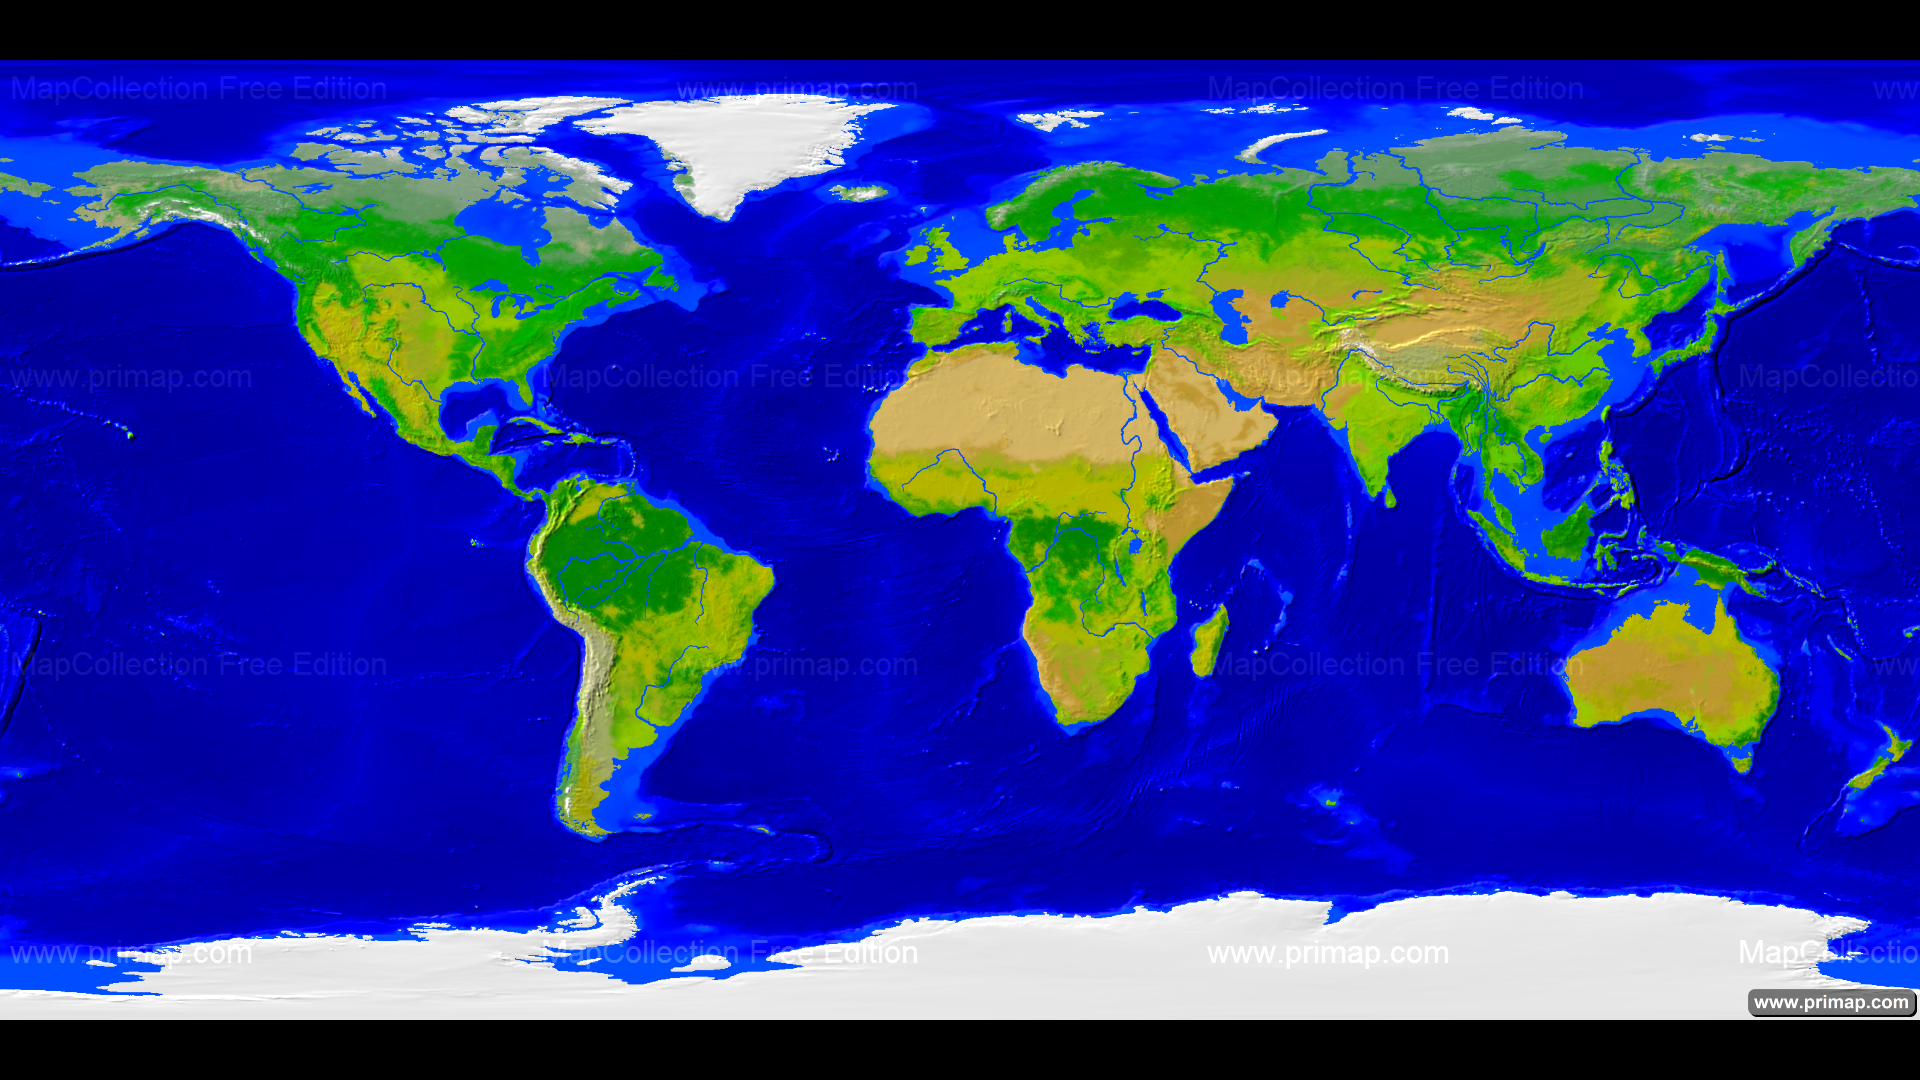 Primap world maps show map gumiabroncs Gallery